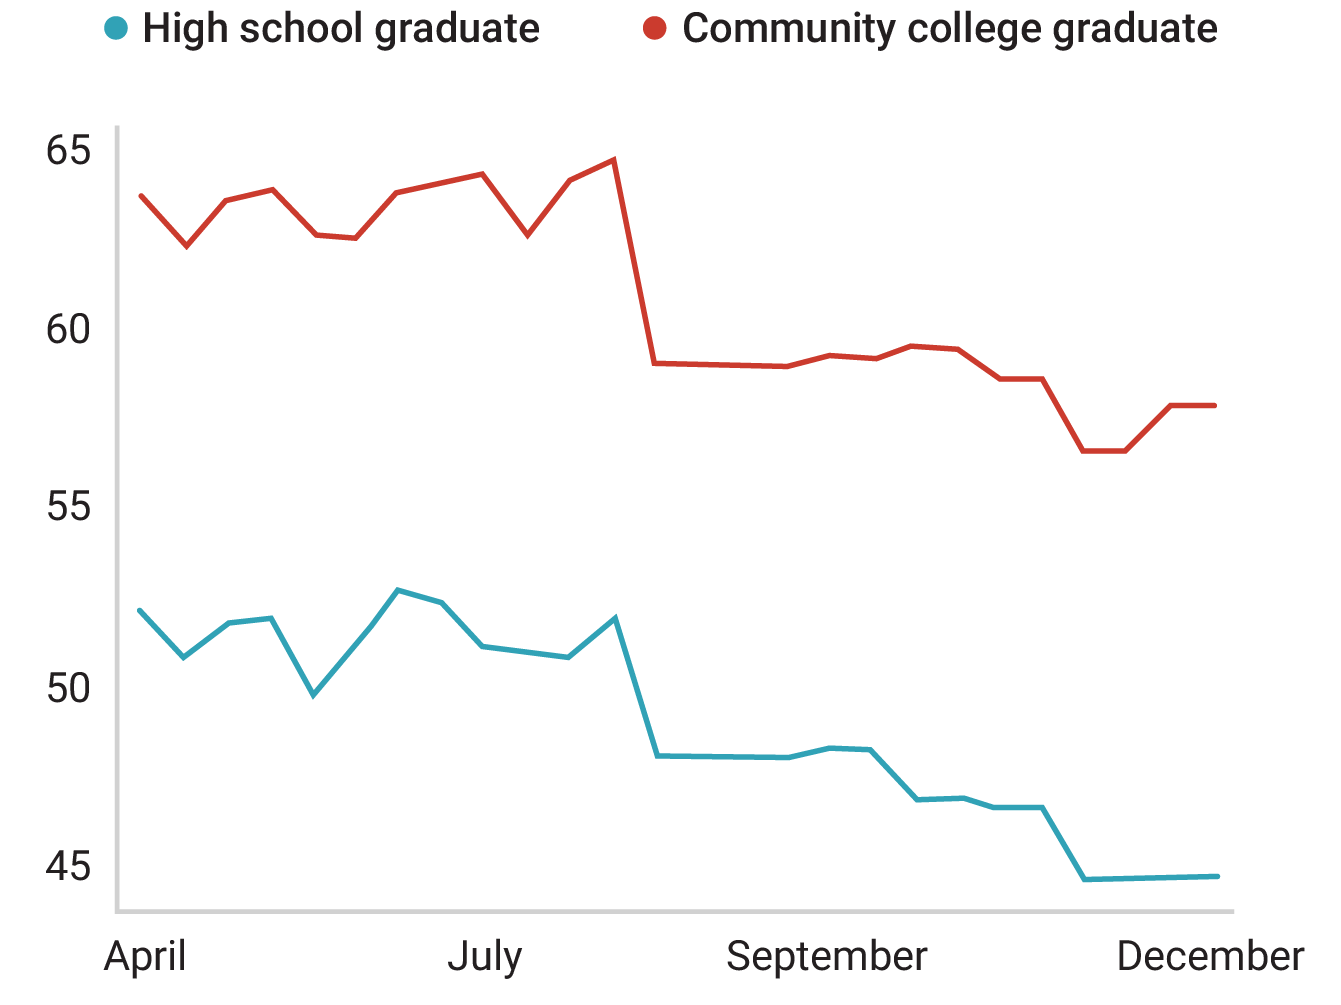 A decreasing percentage of community college and high school graduates receive health care from their employers.